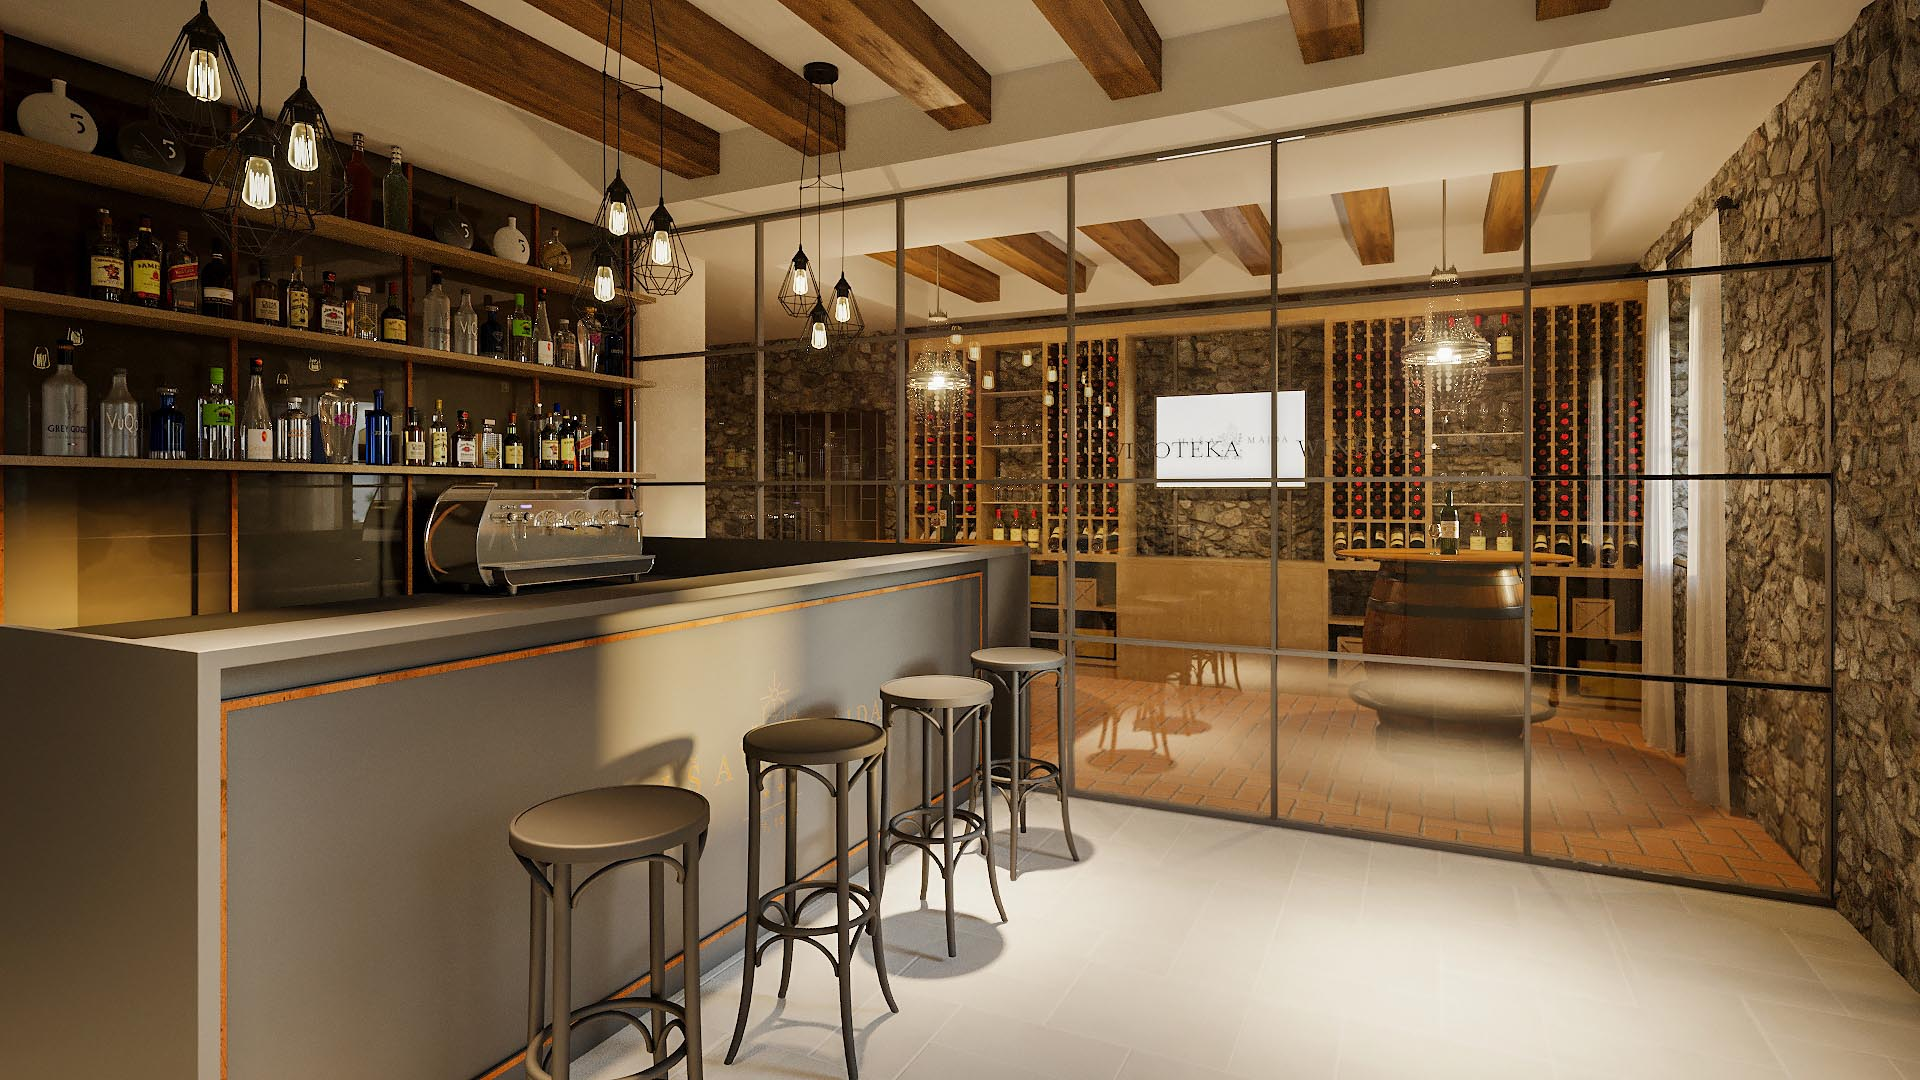 POKE_studio_services_hospitality_hotel_reception_cellar.jpg